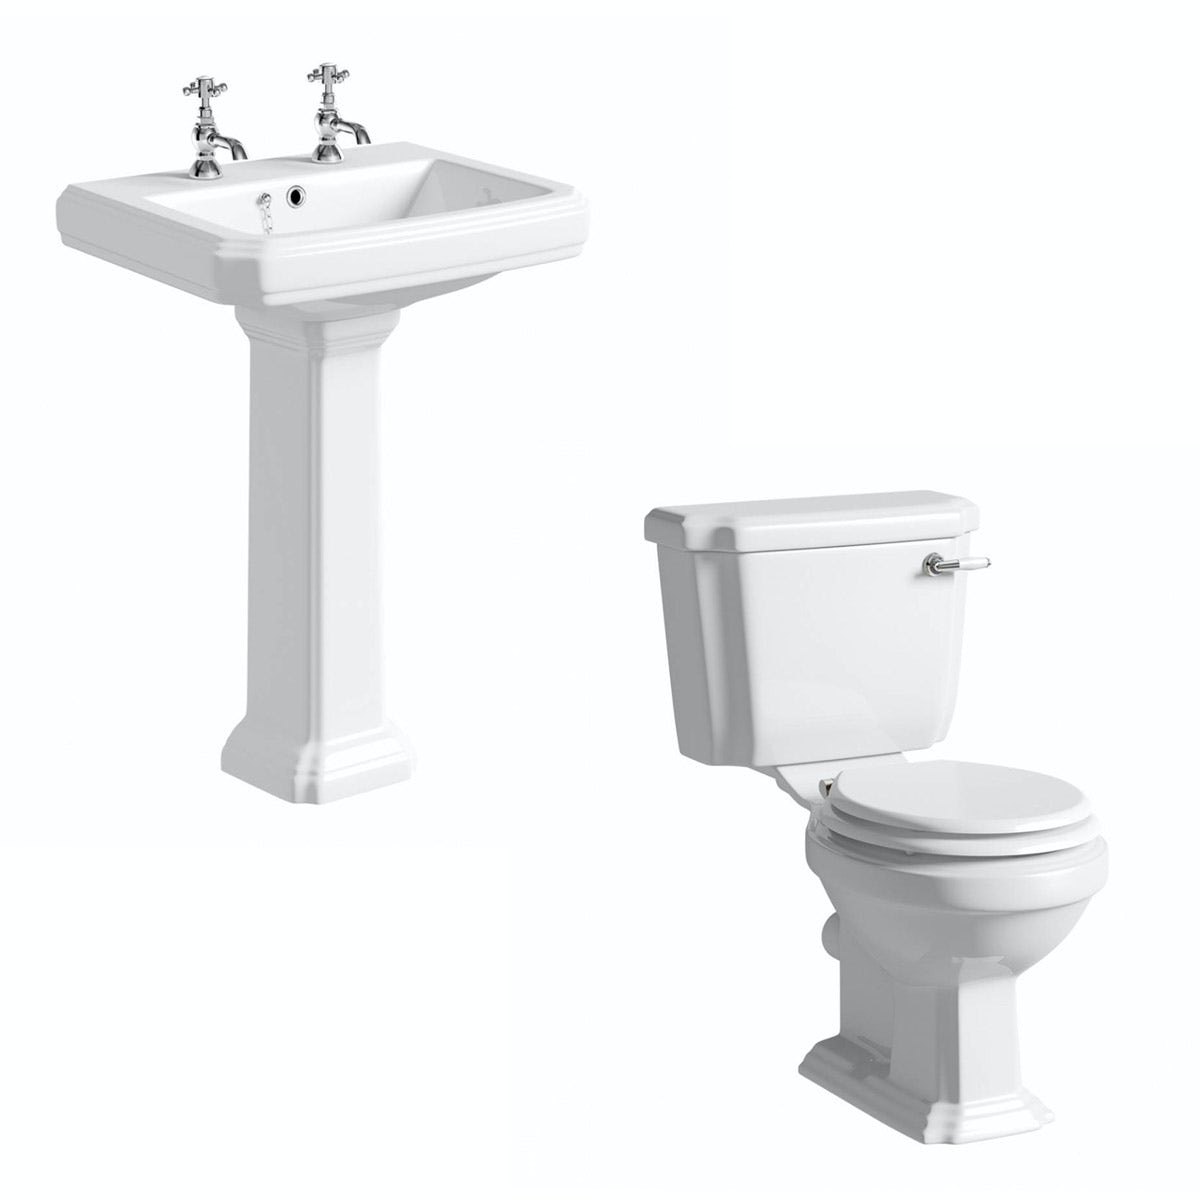 The Bath Co. Dulwich cloakroom suite with white seat and full pedestal basin 615mm